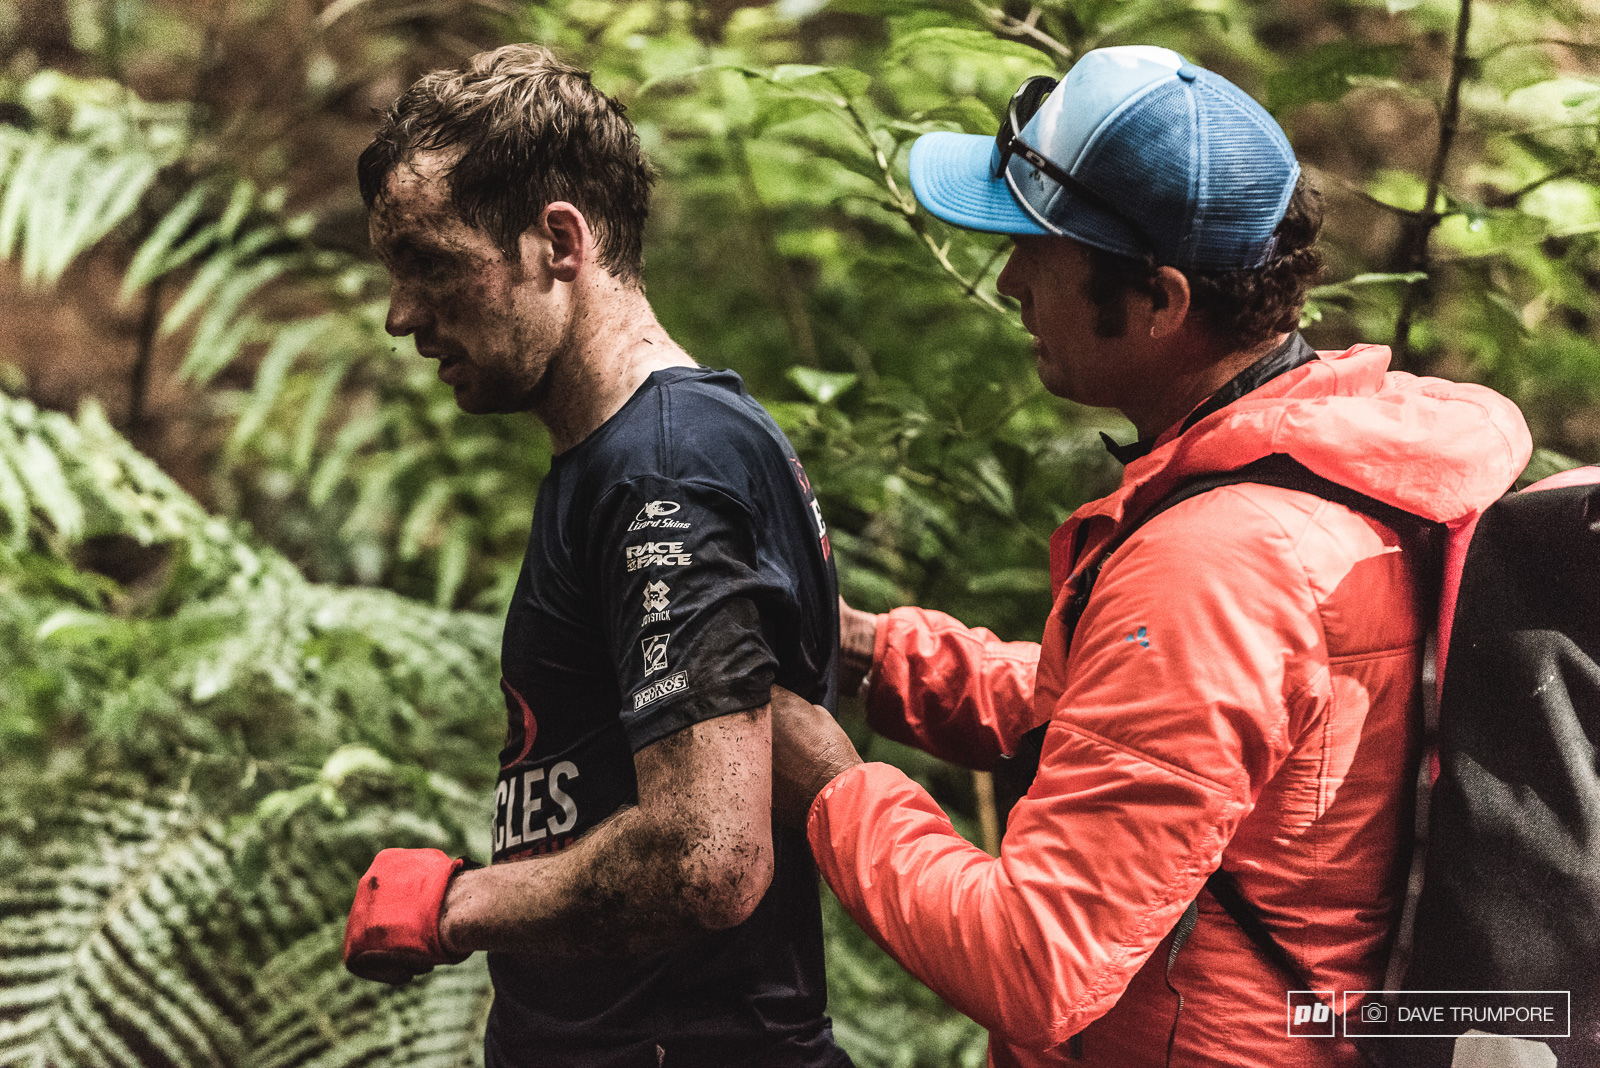 Gary Forest had a scary moment on stage 7 after landing a big stepdown a bit too nose heavy and cartwheeling into a tree.